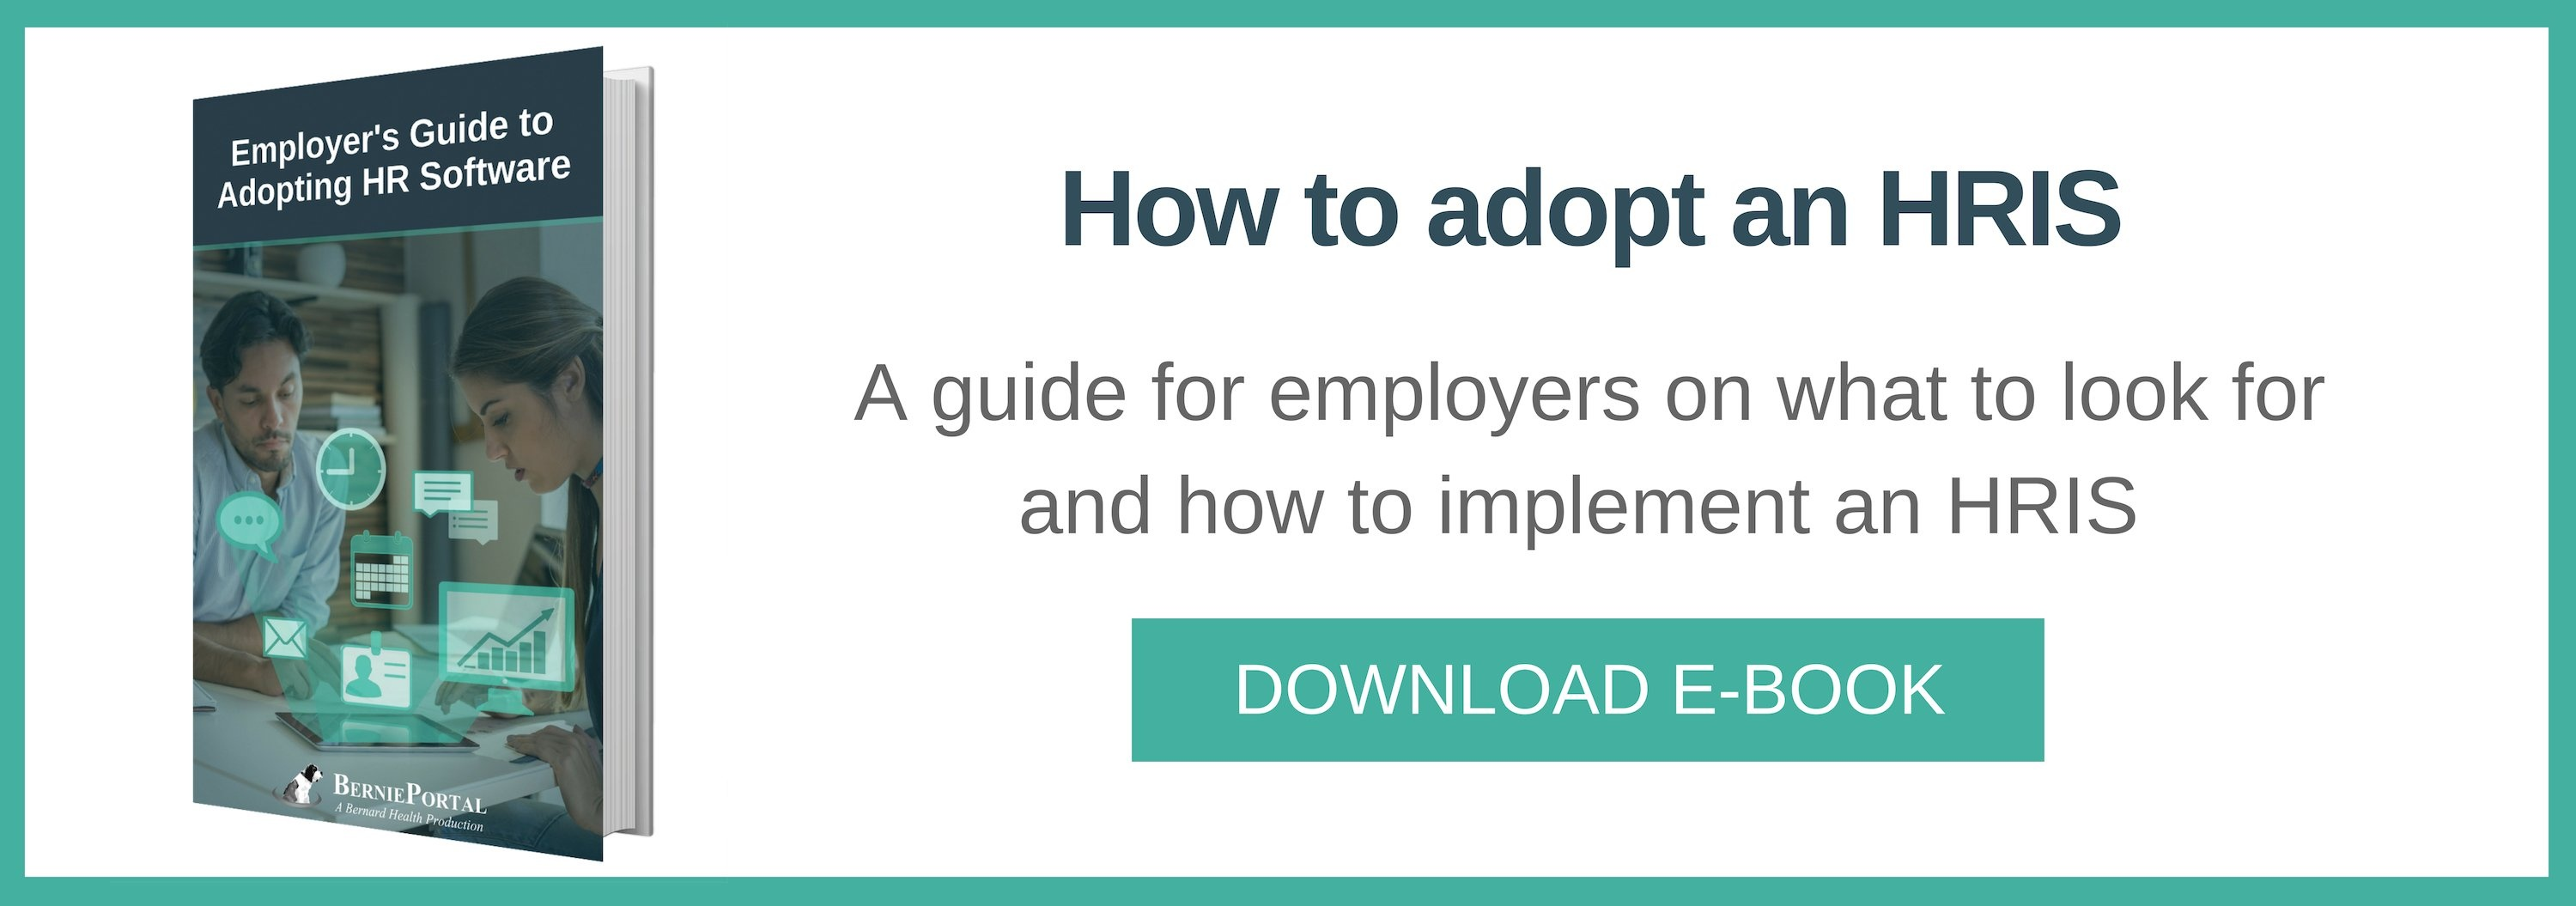 How to adopt an HRIS